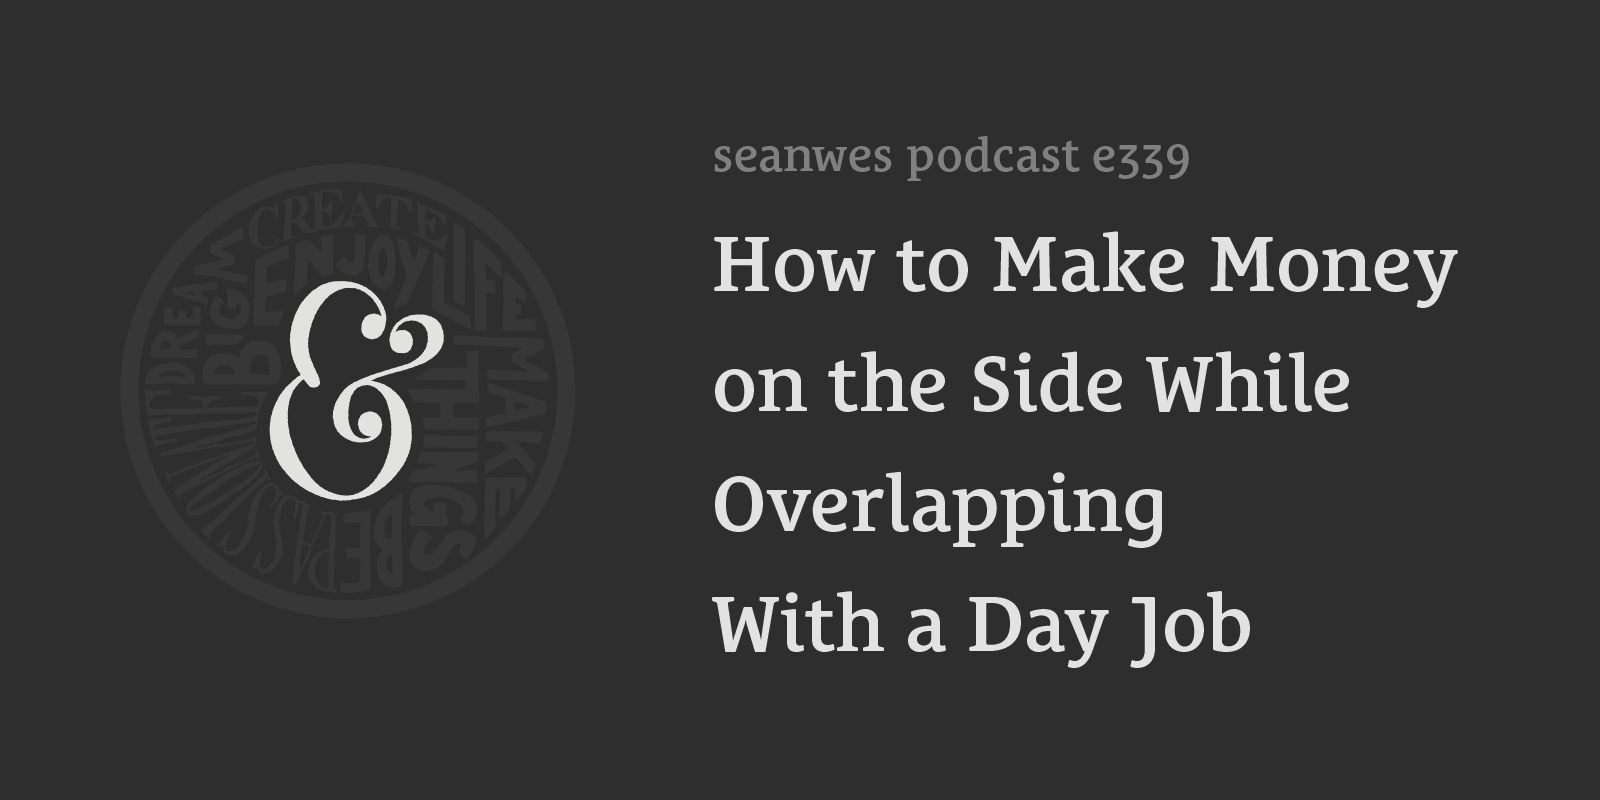 seanwes podcast 339: How to Make Money on the Side While Overlapping With a Day Job